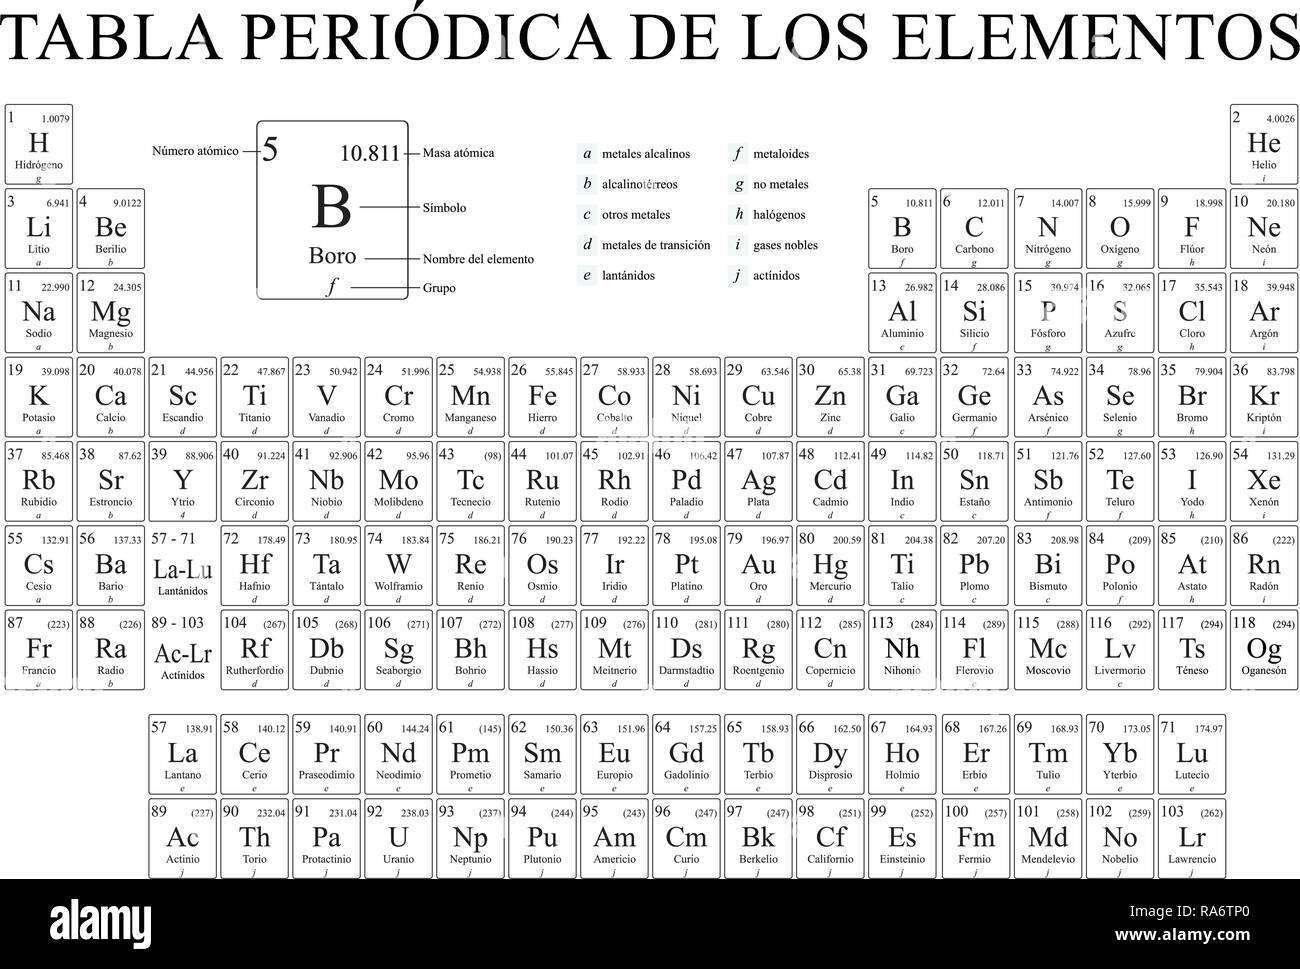 tabla periodica de los elementos periodic table of the elements in spanish language in